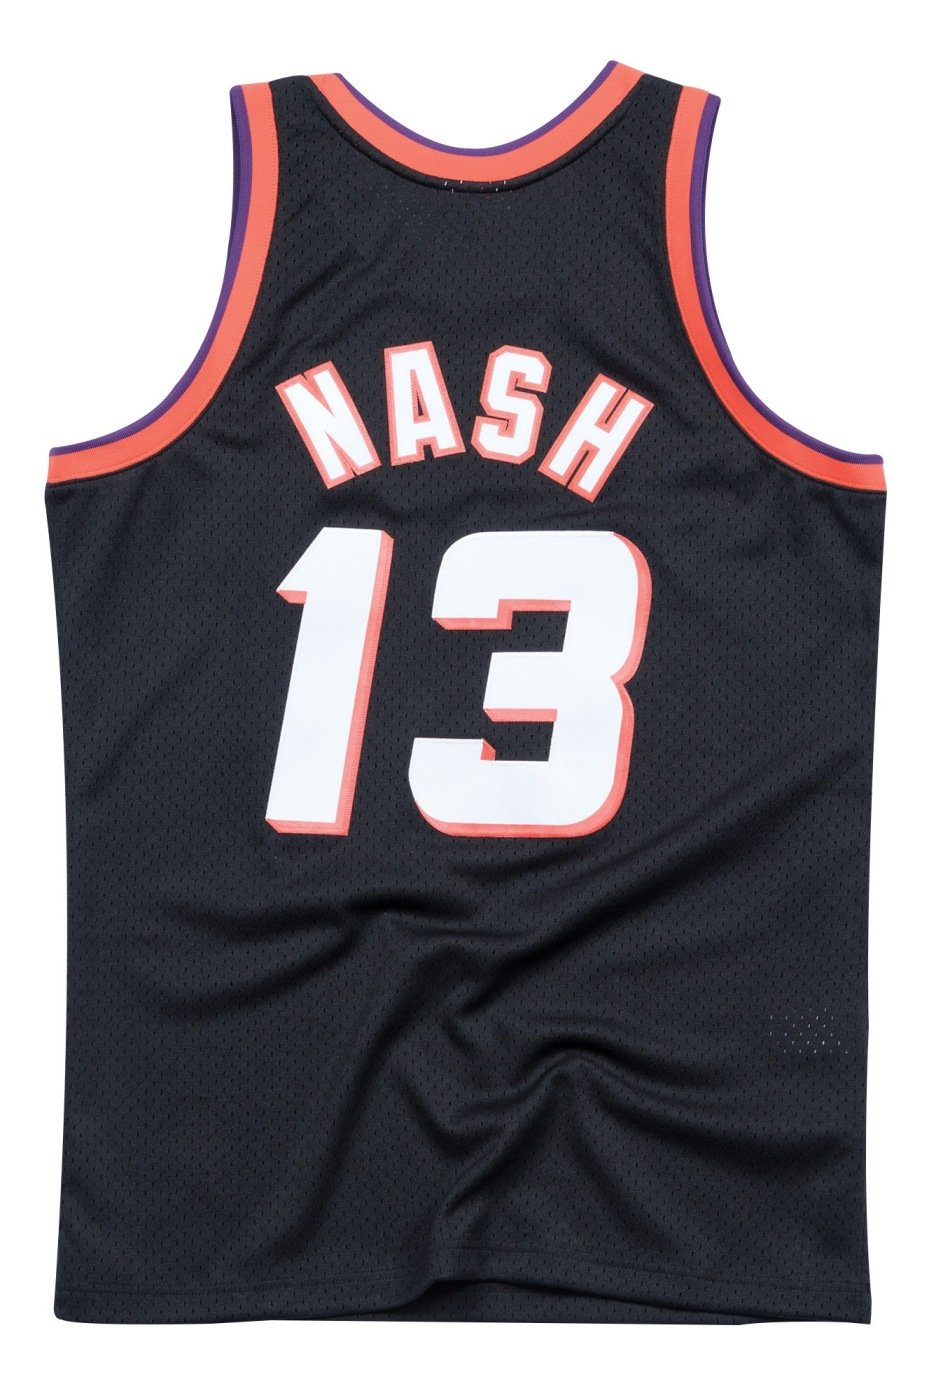 check out 8ff14 ad7dc Steve Nash Phoenix Suns Mitchell and Ness Men's Black Throwback Jesey